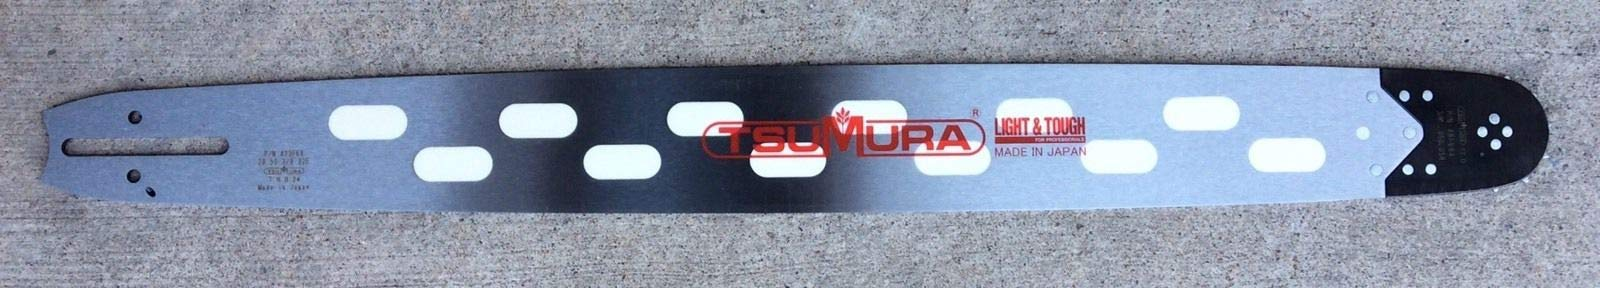 TsuMura 24'' Light Weight Bar D009 Mount Husqvarna 372XP 385XP 575XP 394XP 570 3120XP by TsuMura